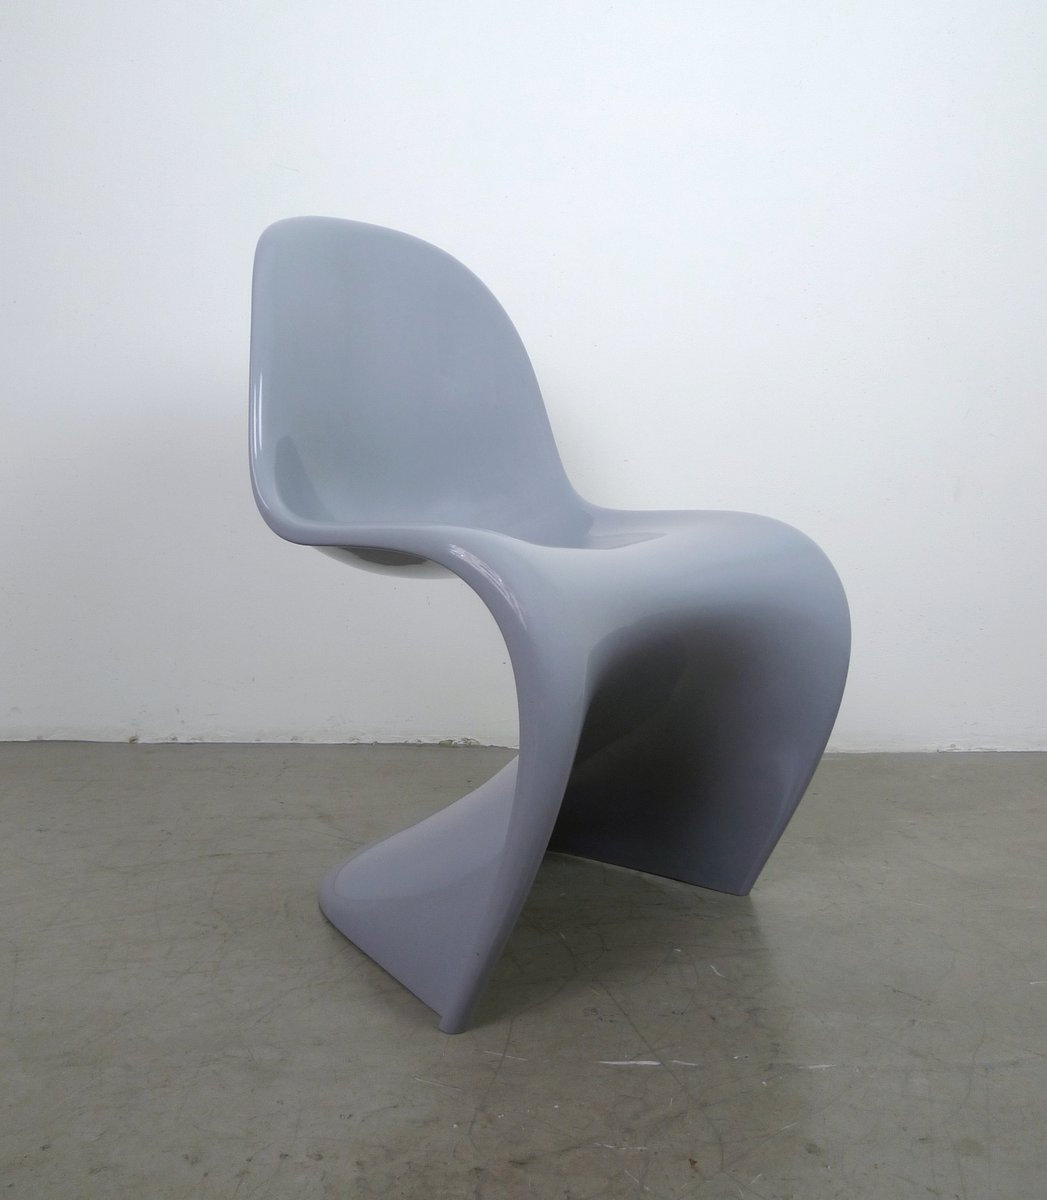 grey panton chair classic by verner panton for vitra 1998 for sale at pamono. Black Bedroom Furniture Sets. Home Design Ideas